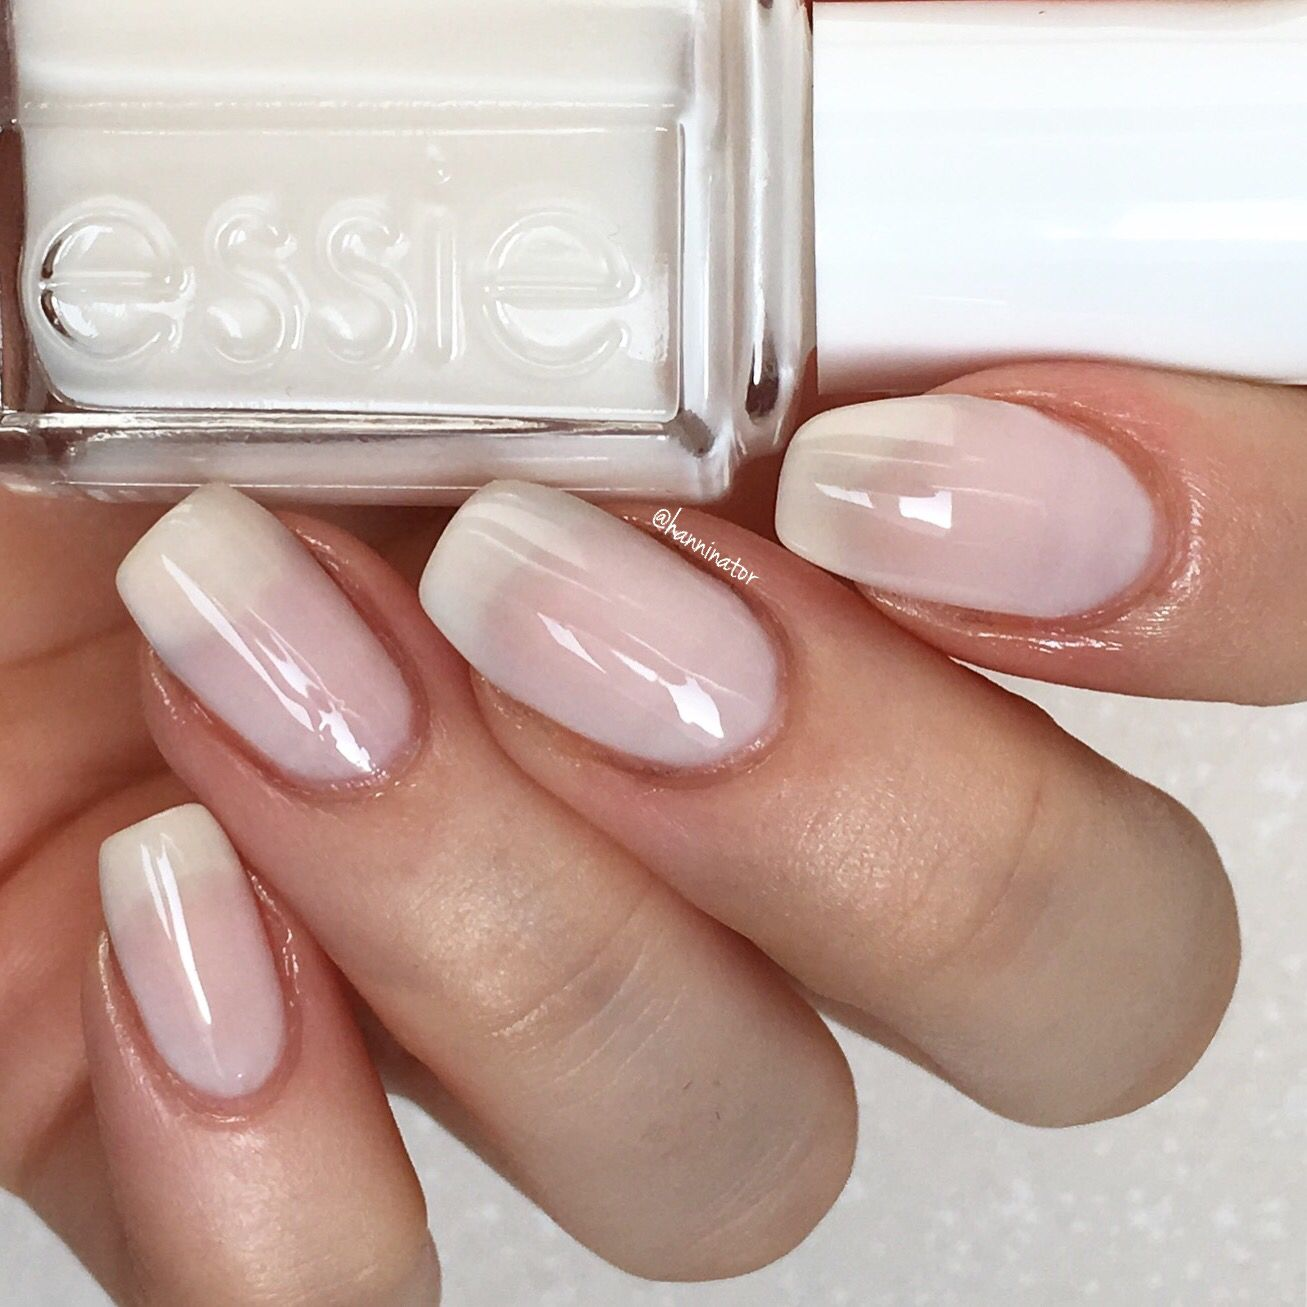 Essie - Allure | Nail Polish | Pinterest | Essie allure, Salon nails ...